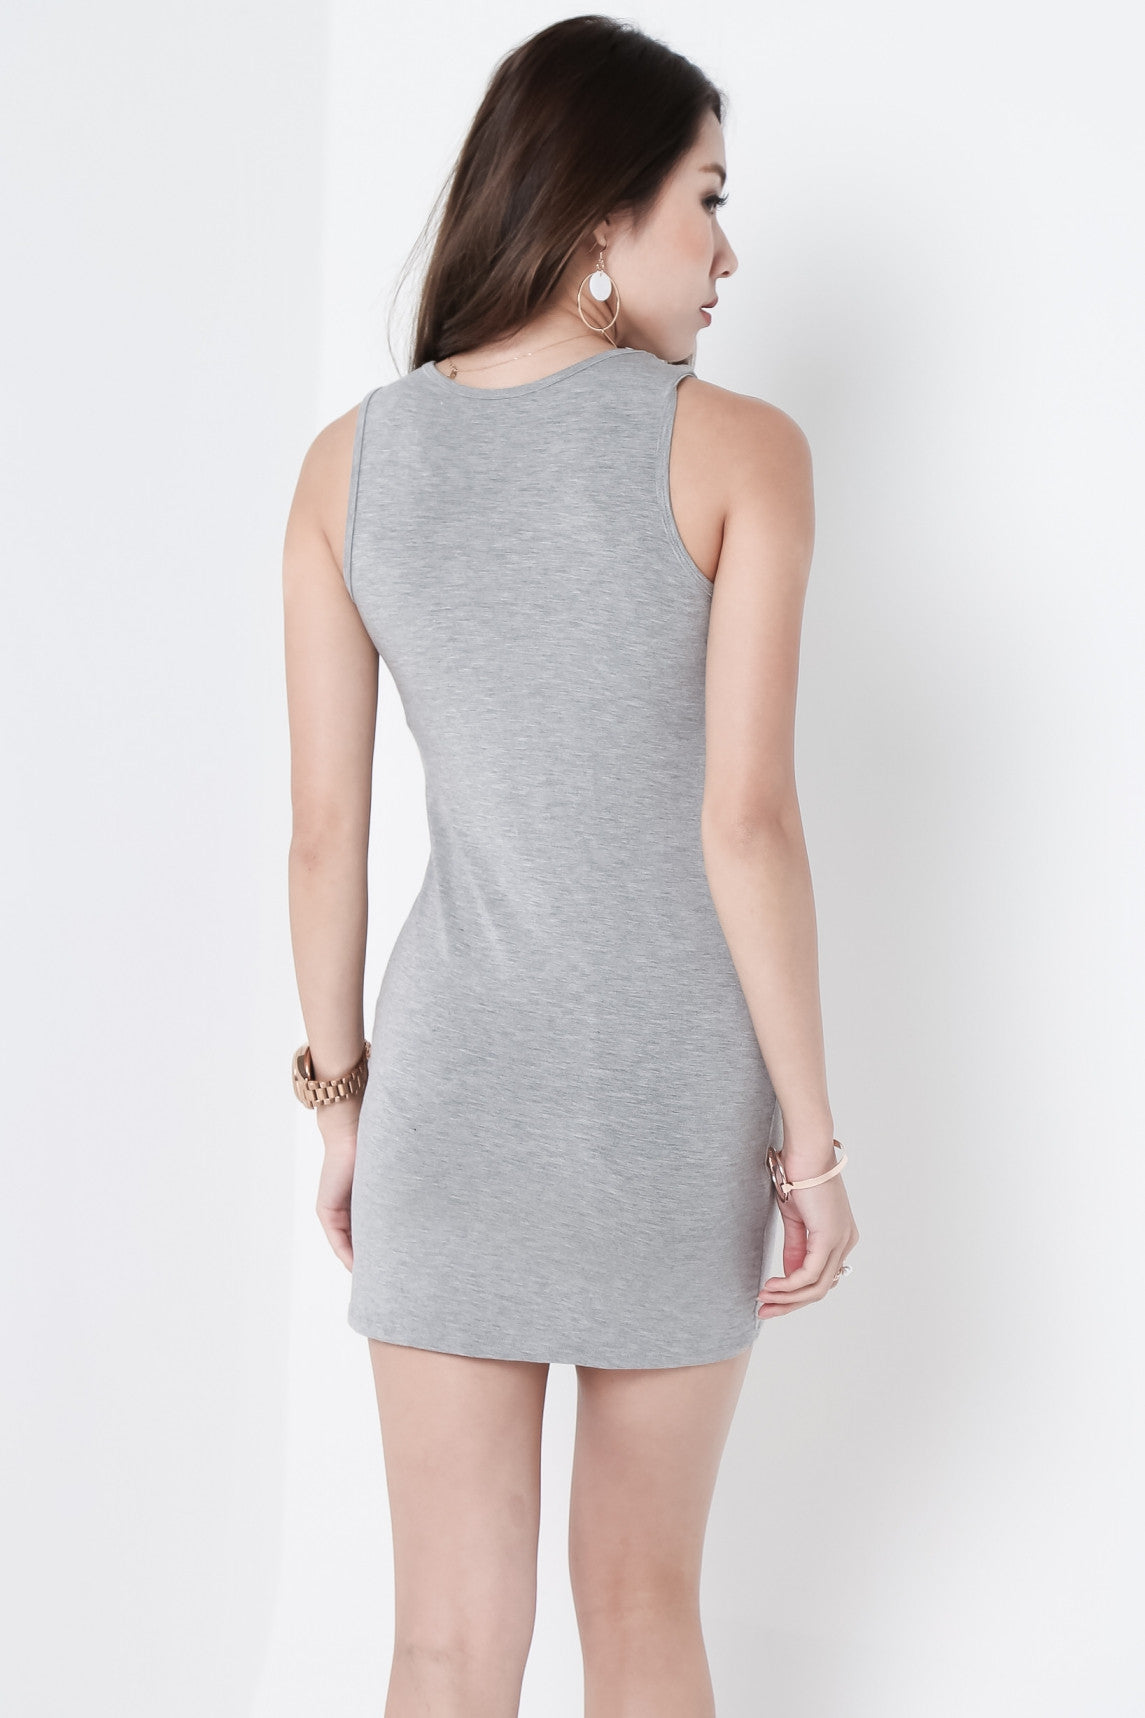 *RESTOCKED* TANKFUL FOR YOU DRESS IN LIGHT GREY